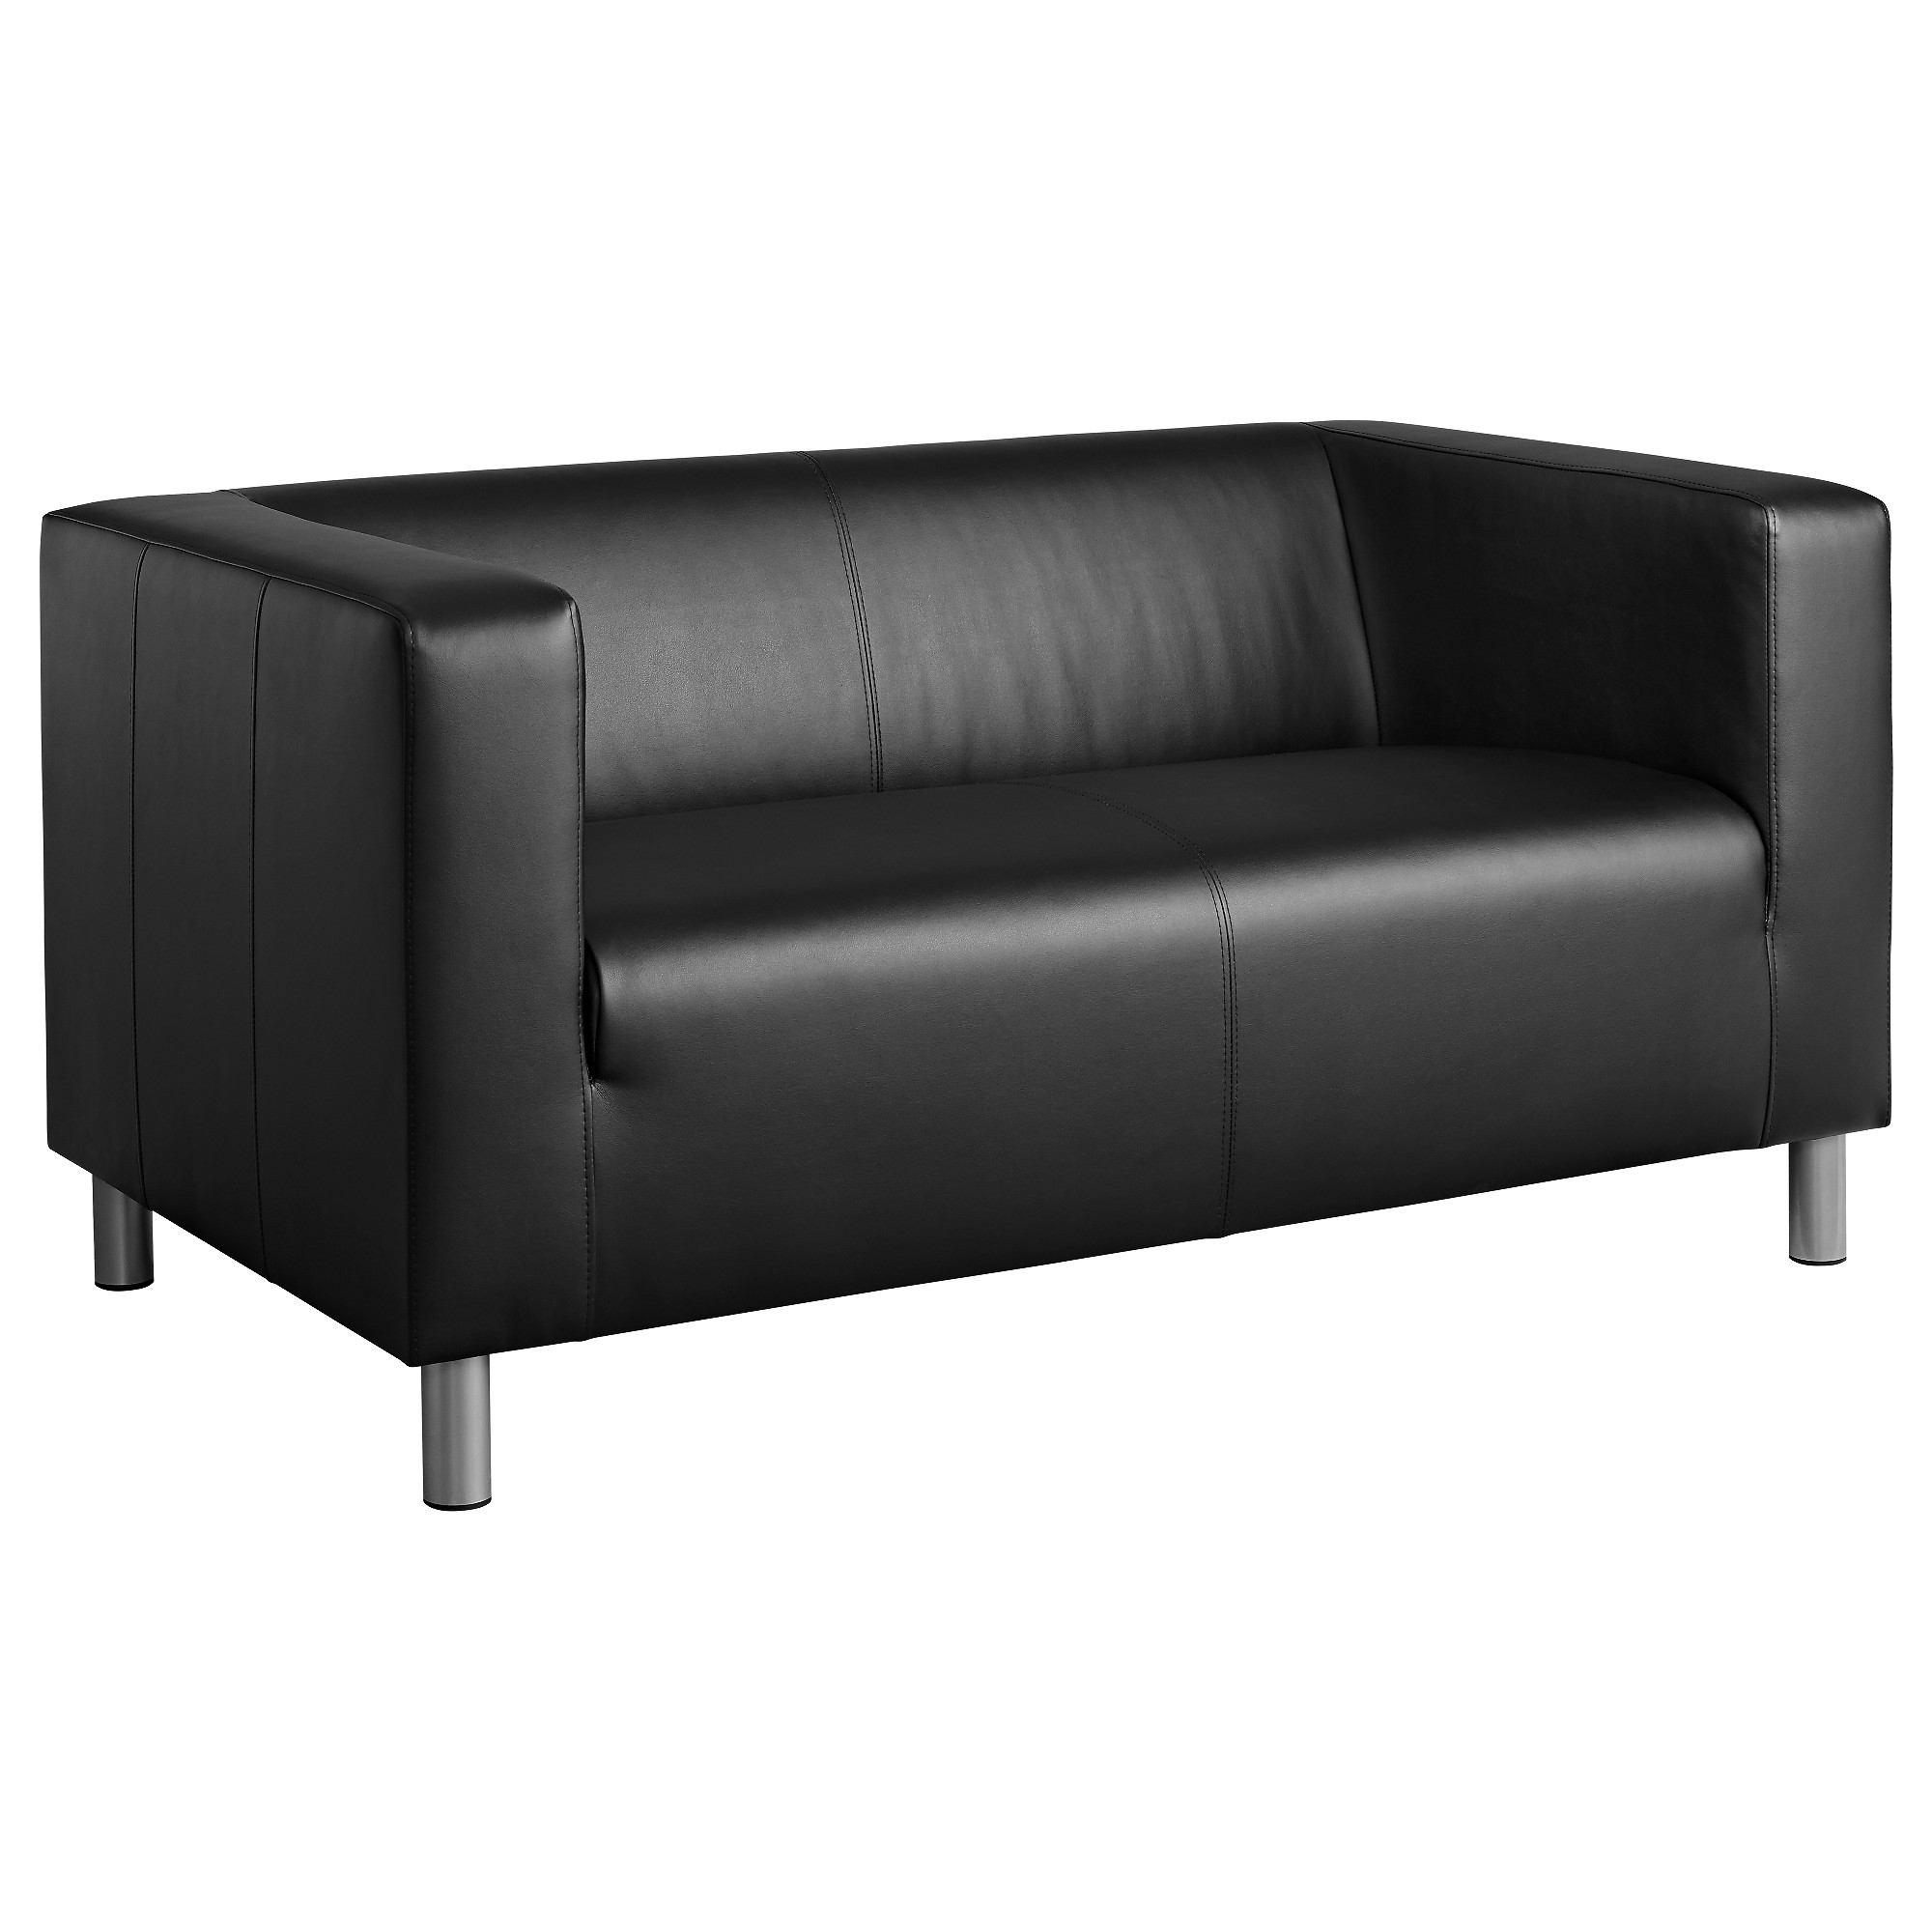 Most Current Klippan Compact 2 Seat Sofa Kimstad Black – Ikea With Black 2 Seater Sofas (Gallery 6 of 20)